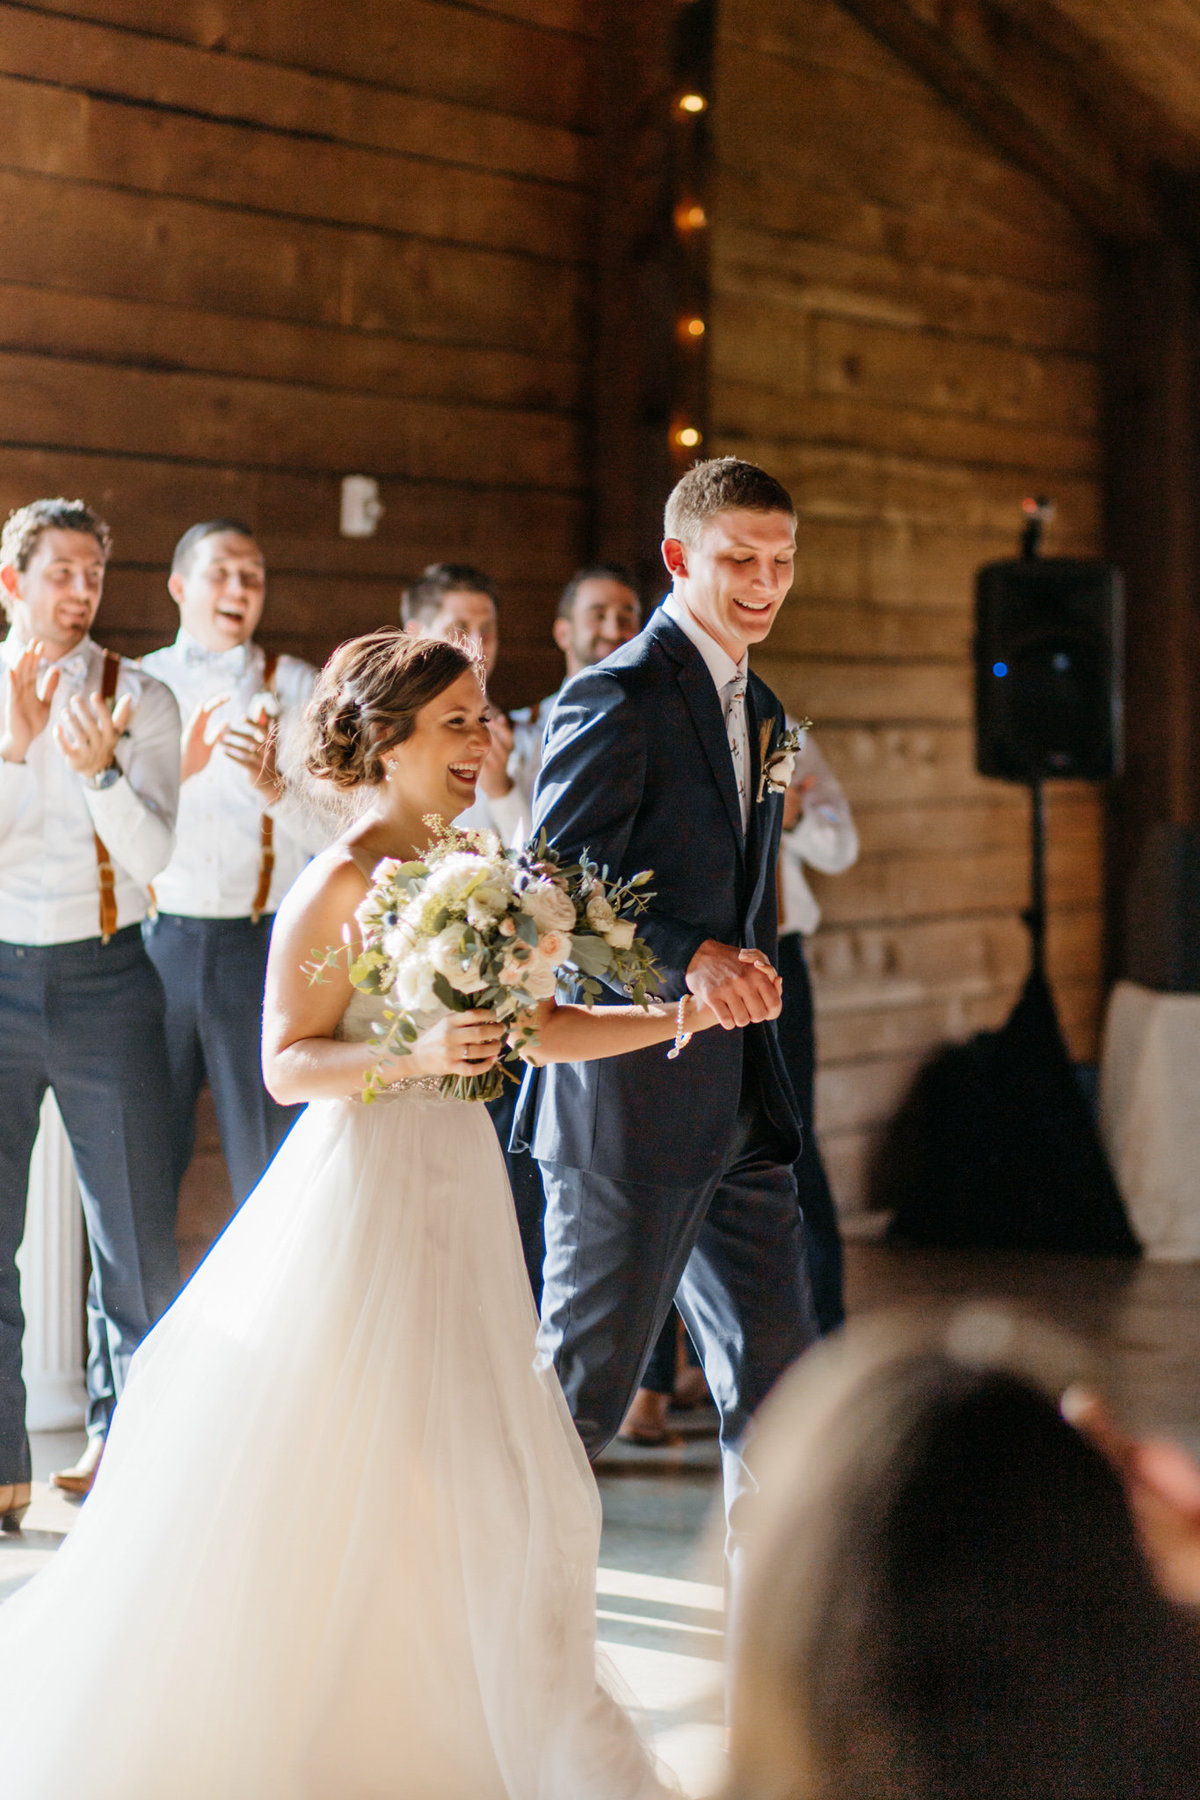 Alexa-Vossler-Photo_Dallas-Wedding-Photographer_North-Texas-Wedding-Photographer_Stephanie-Chase-Wedding-at-Morgan-Creek-Barn-Aubrey-Texas_106